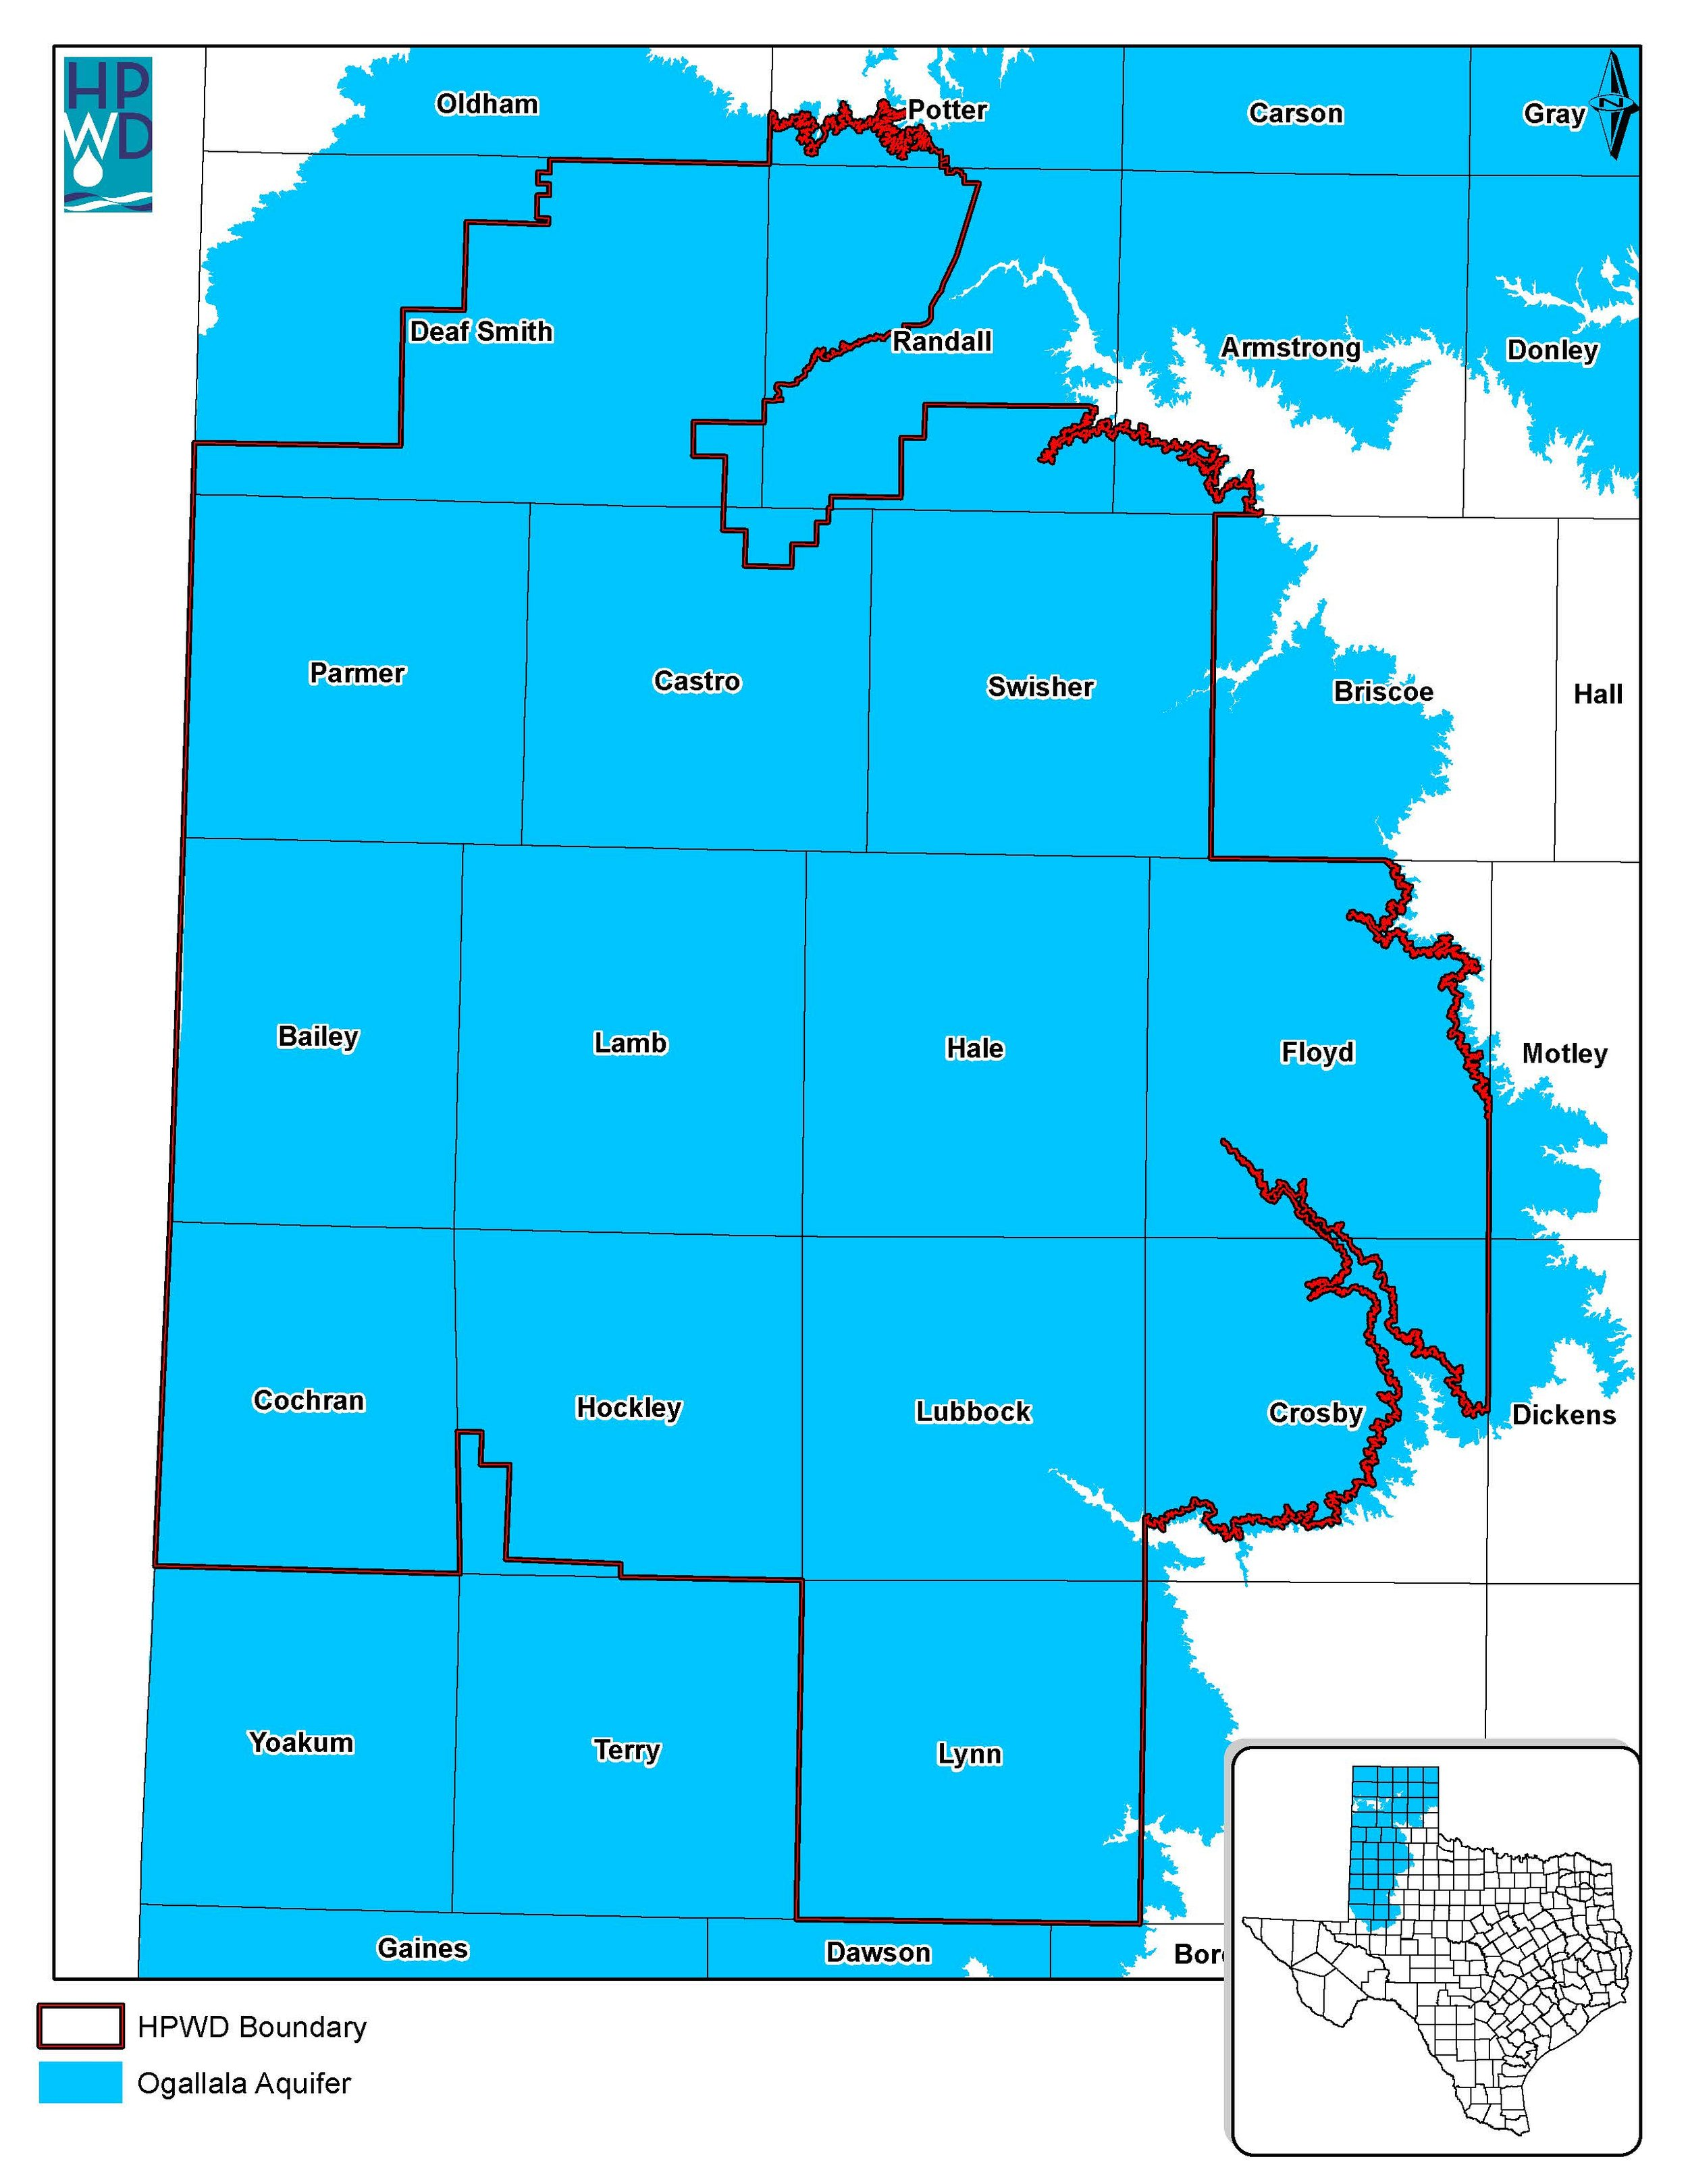 Ogallala Aquifer map.  Download map